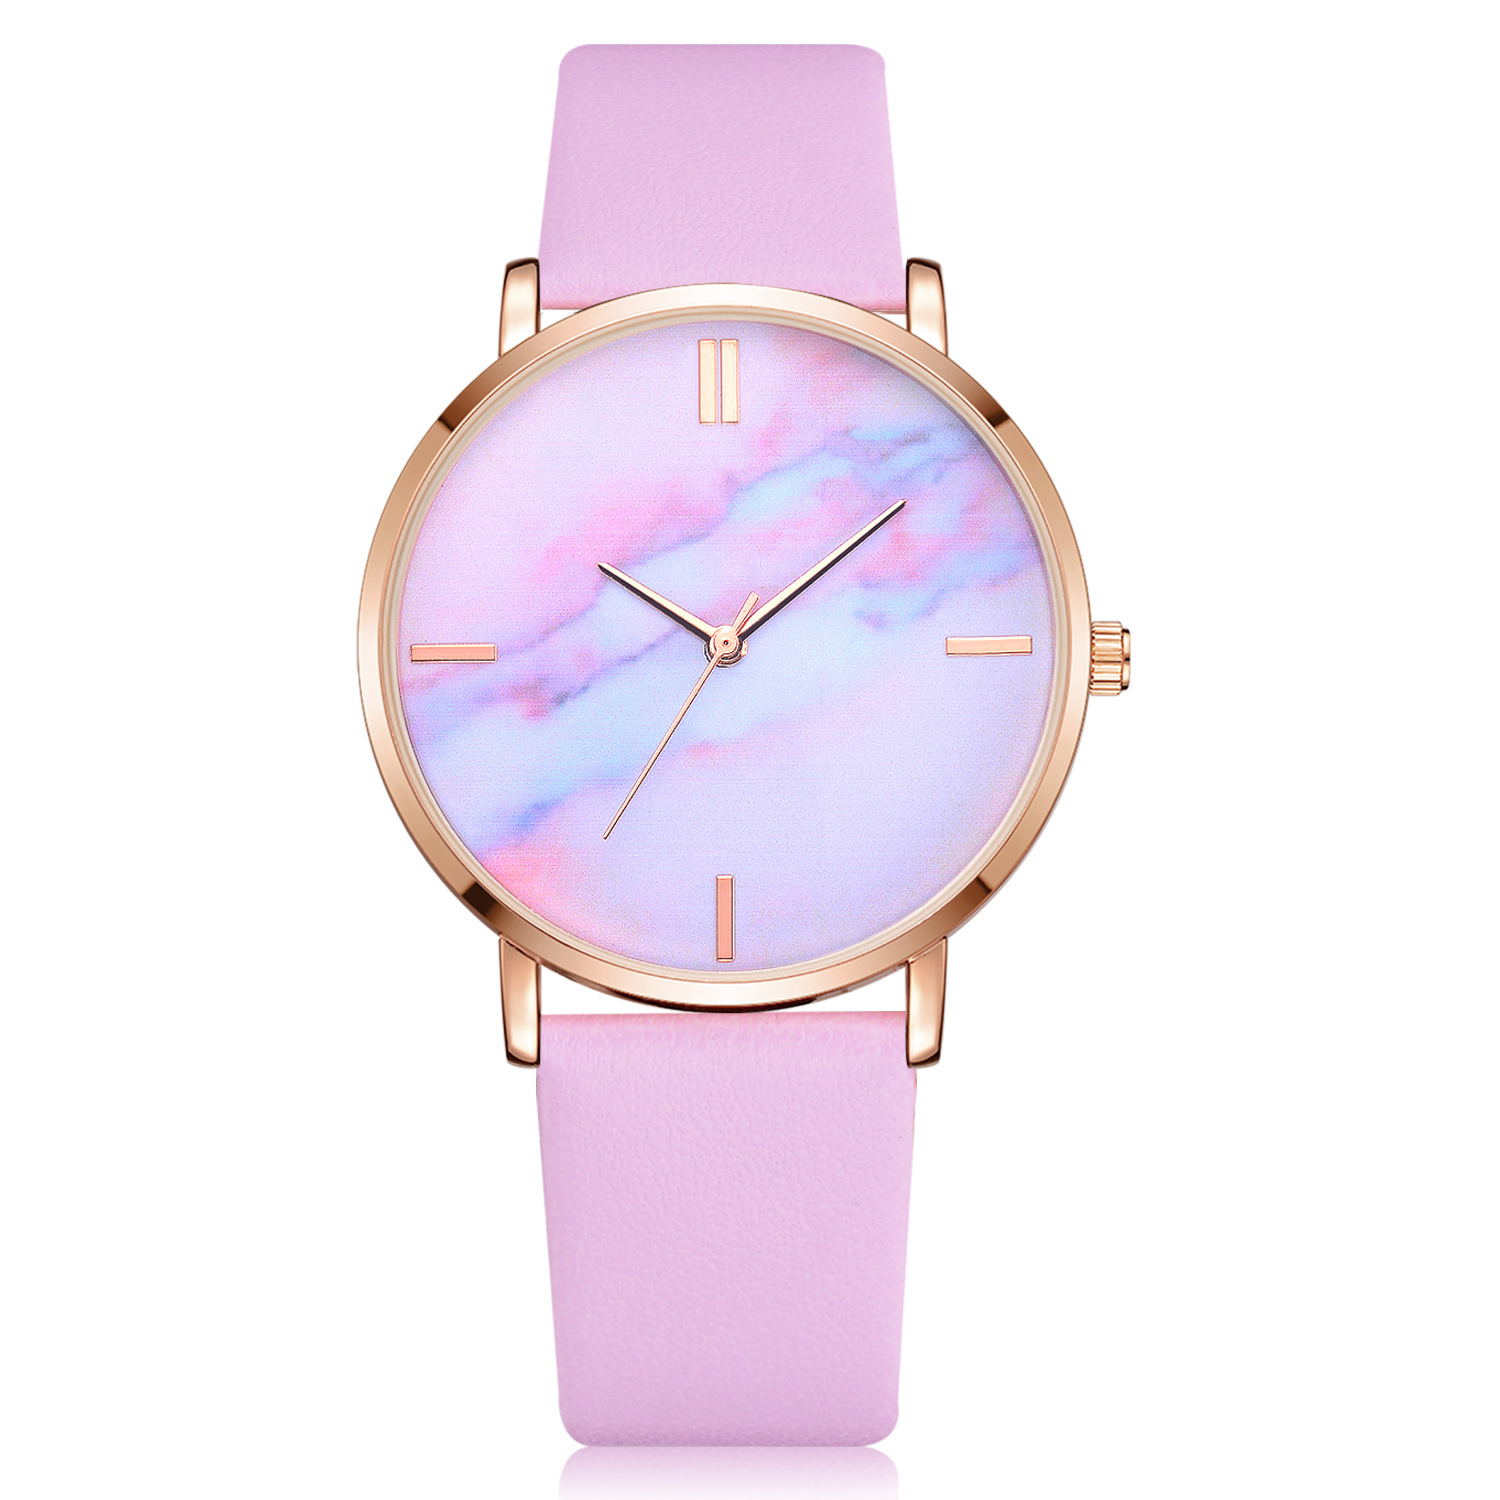 Womens Watch 2018 Fashion Ladies Colours Of The Rainbow Leather Band Analog Quartz Wrist Watch Clock Relogio Masculino Gifts